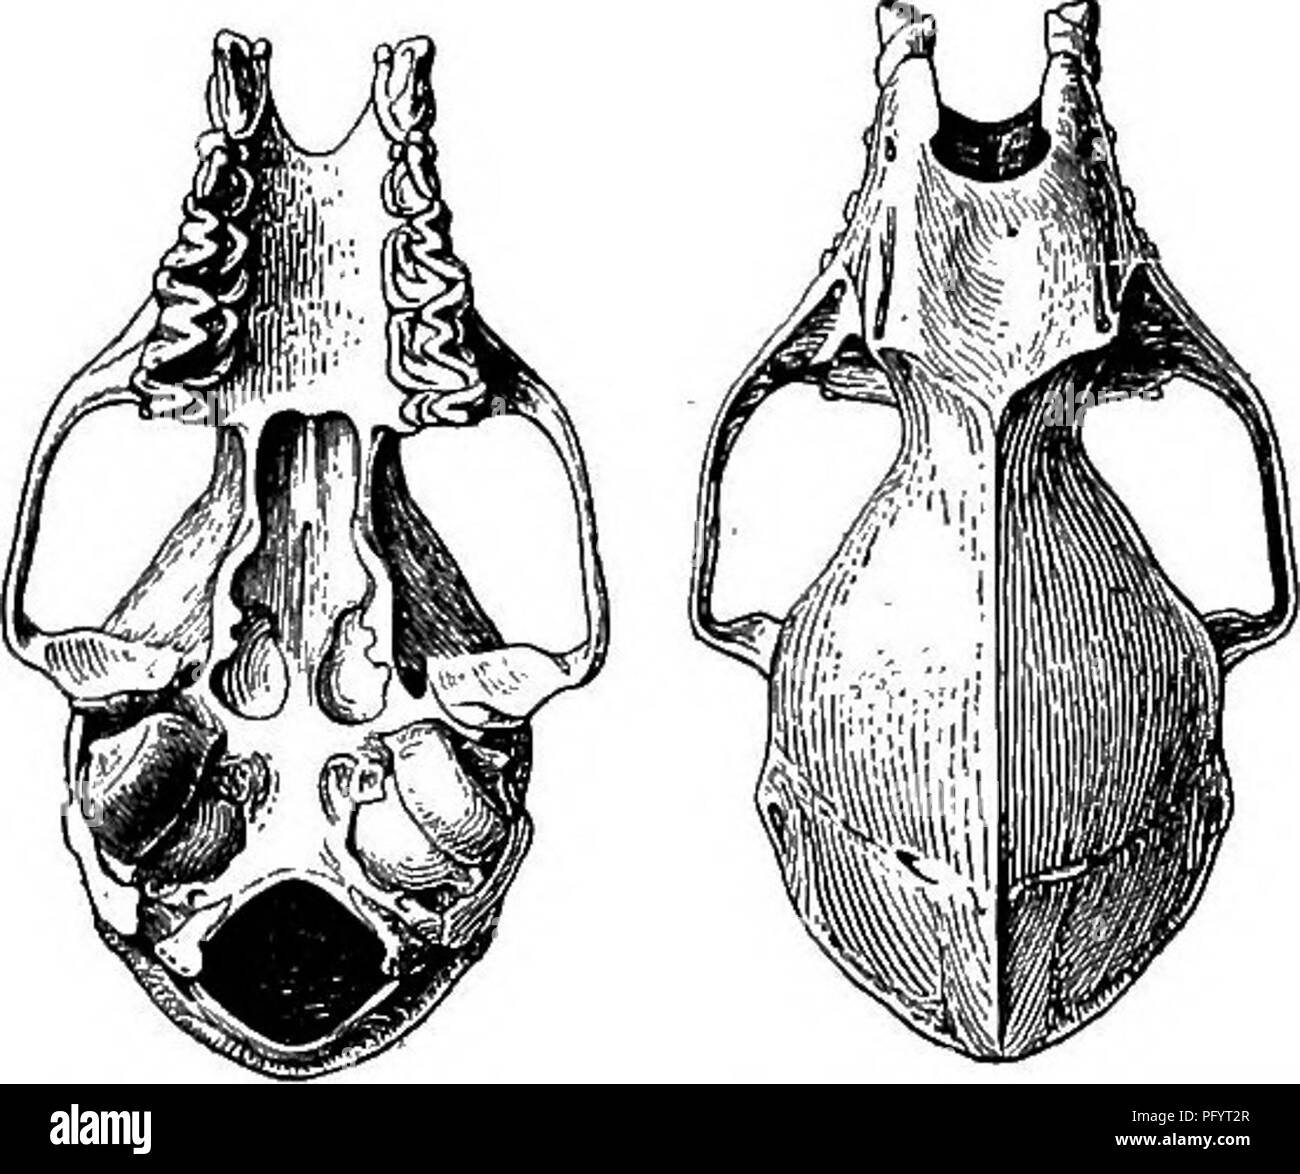 """. The families and genera of bats . Bats; Bats. 104 BULLETIN 57, UNITED STATES NATIONAL MUSEUM. entoconid, which is practically absent from m """". Skull (fig. 20) with rostrum slightly less than half as long as braincase, slender, slightly concave above, without supraorbital ridges or special widen- ing in interorbital or lachrymal regions, the postorbital processes reduced to the merest trace. Basisphenoid pits shallow but distinct, partly overhung by the concave-spatulate hamulars. Audital bullae small, their greatest diameter less than width of space between them. Sagittal crest low and indis - Stock Image"""